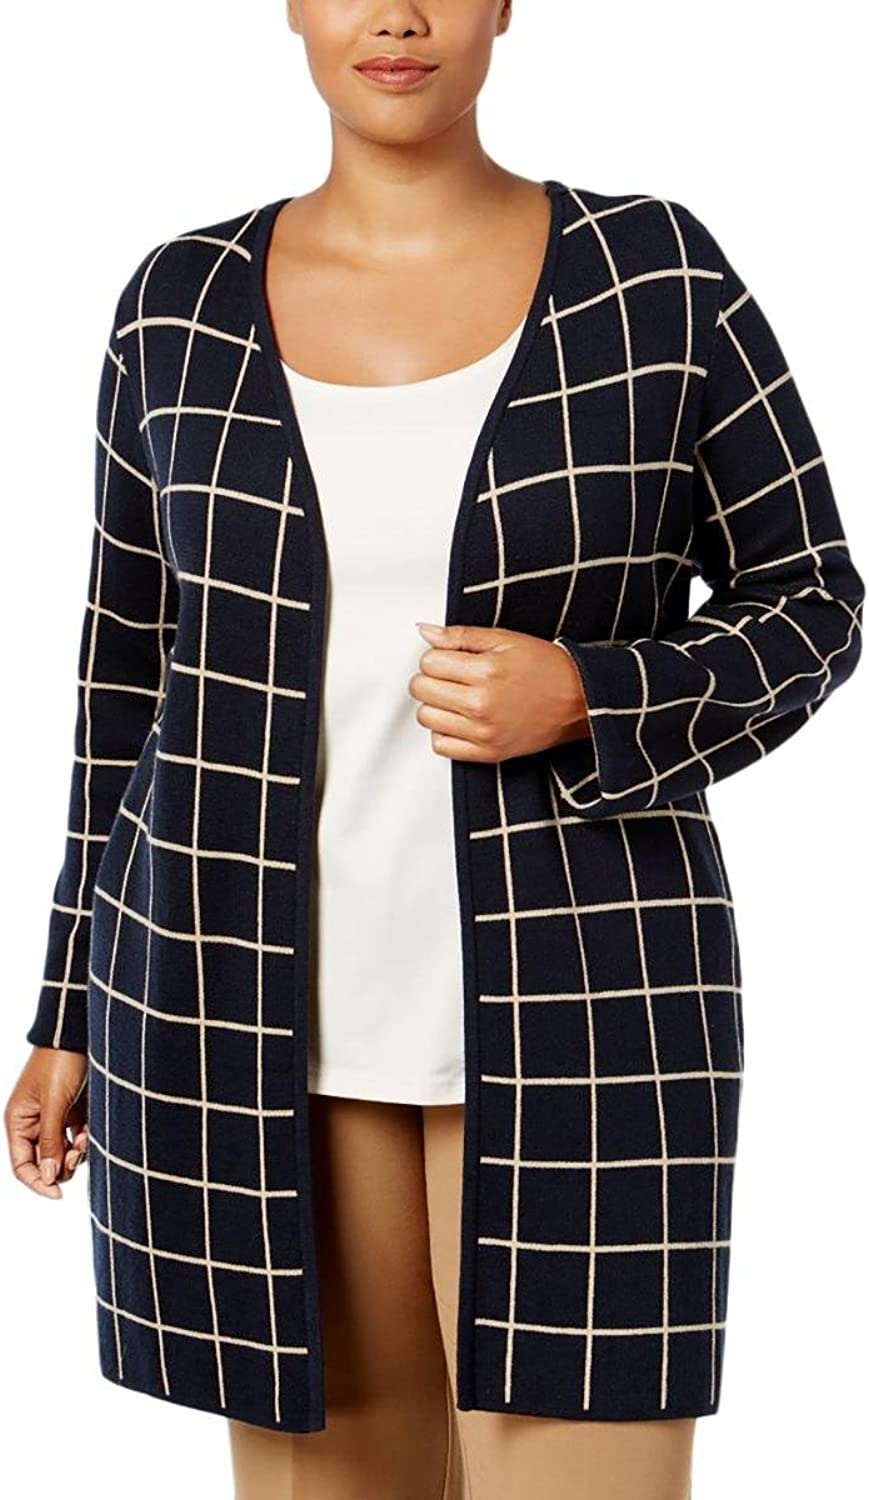 Charter Club Womens Plus Wool Blend Open Front Cardigan Sweater